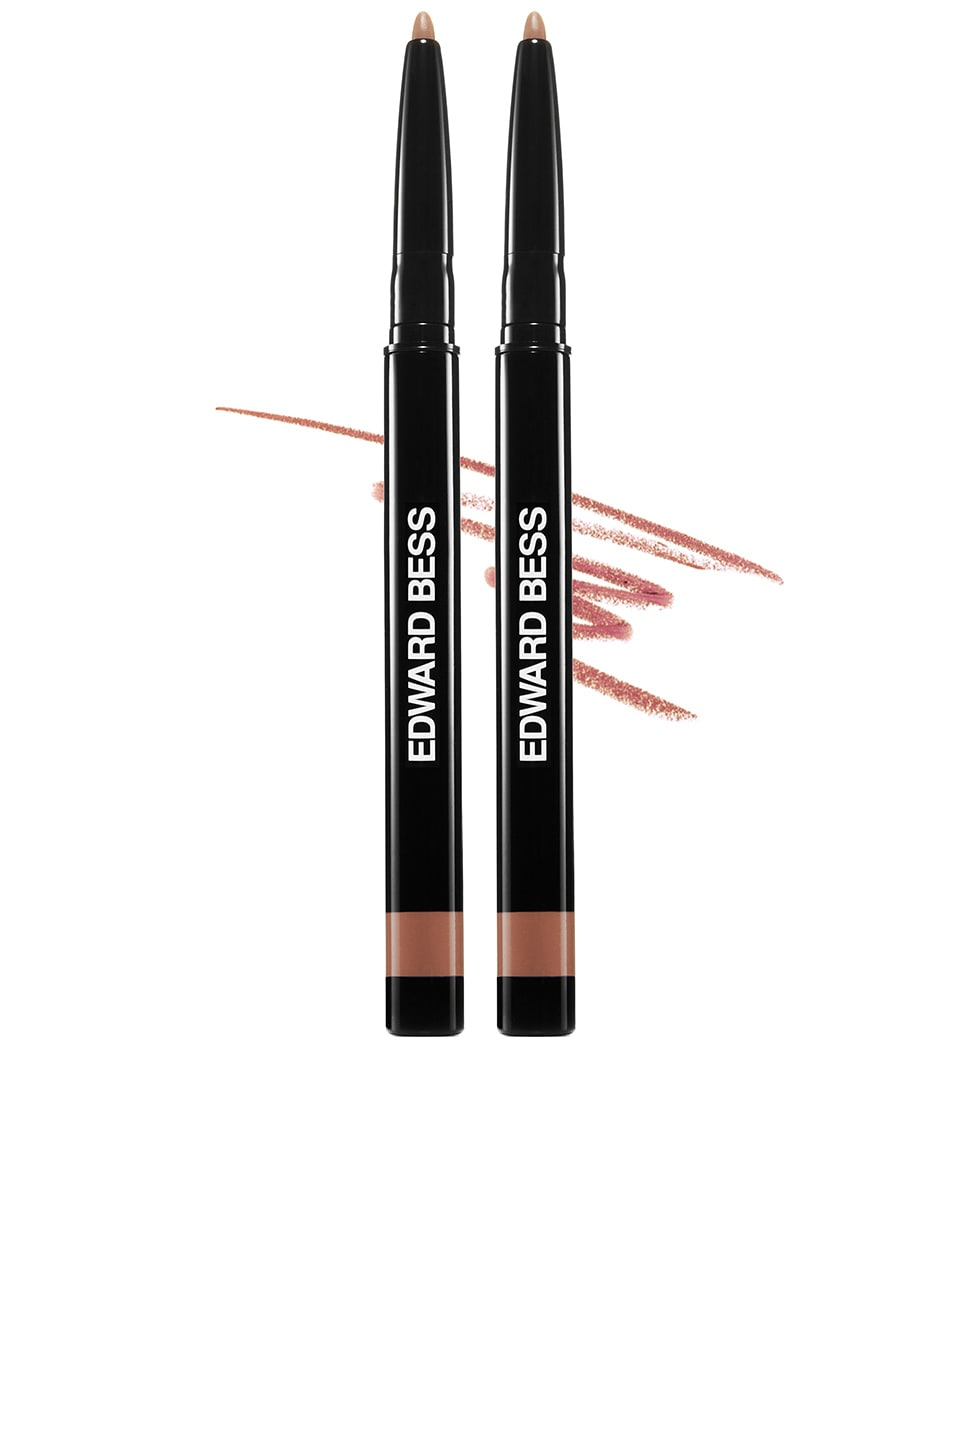 Edward Bess Defining Lip Liner in Barely